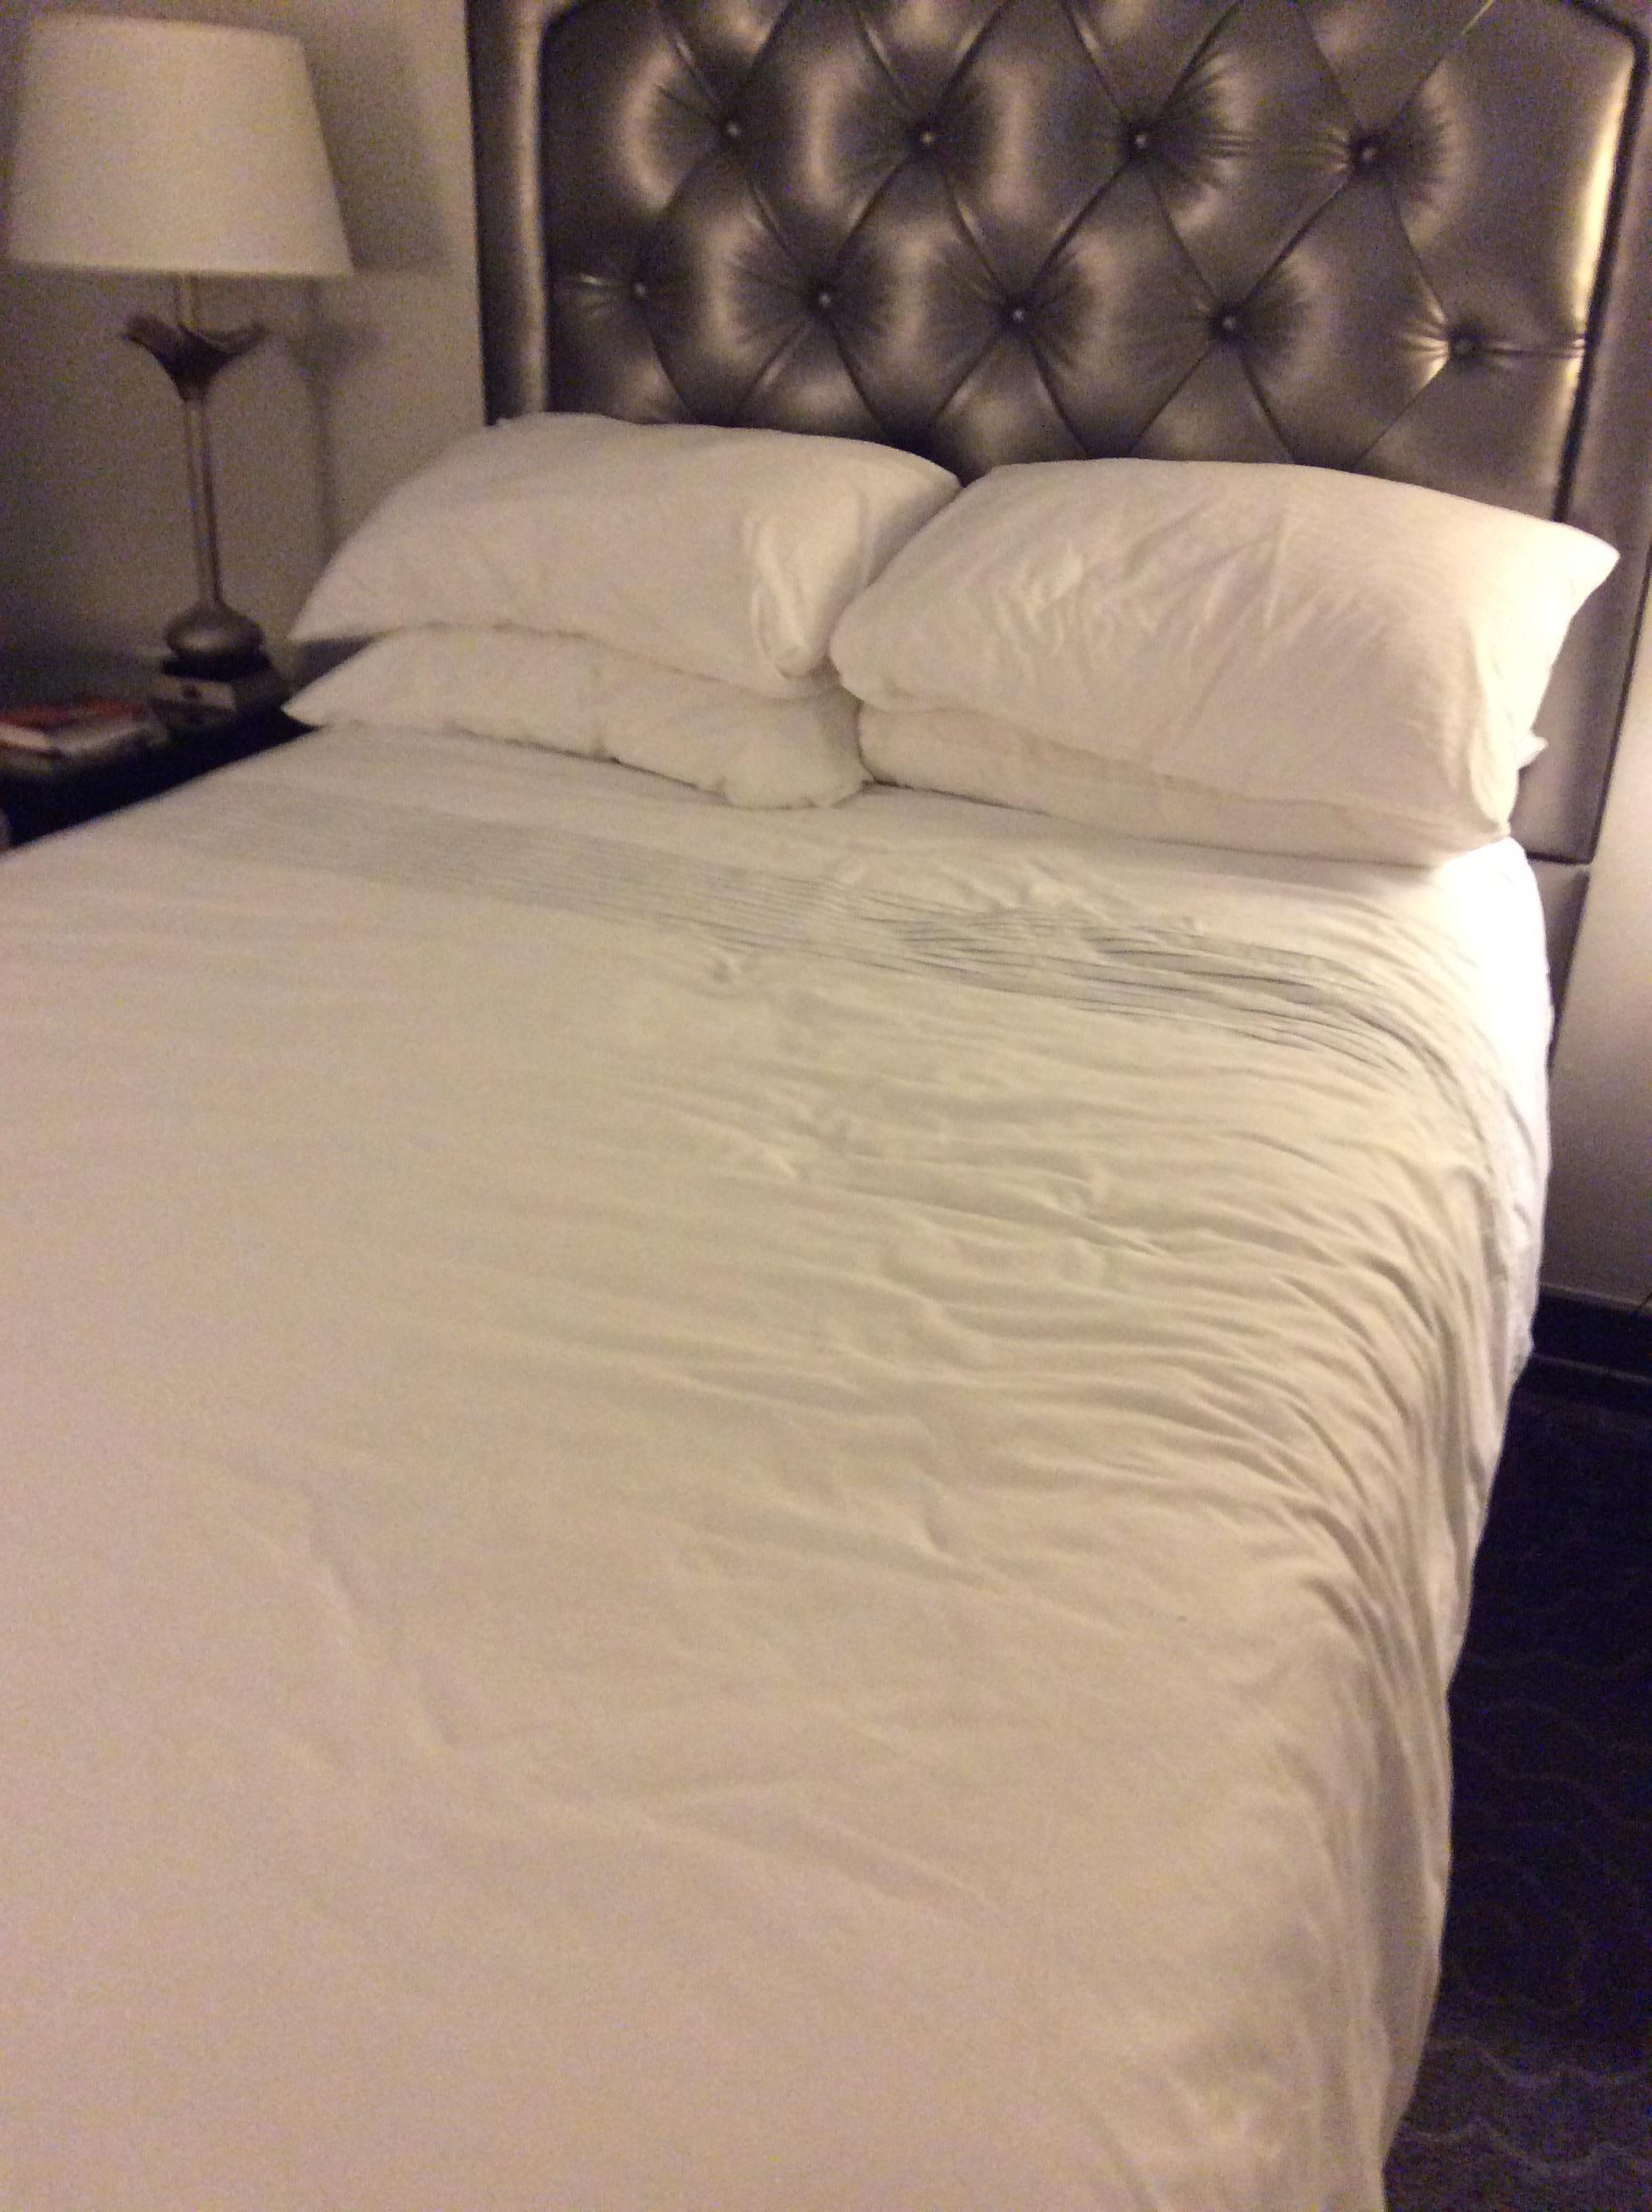 And the four foot bed for two adults.